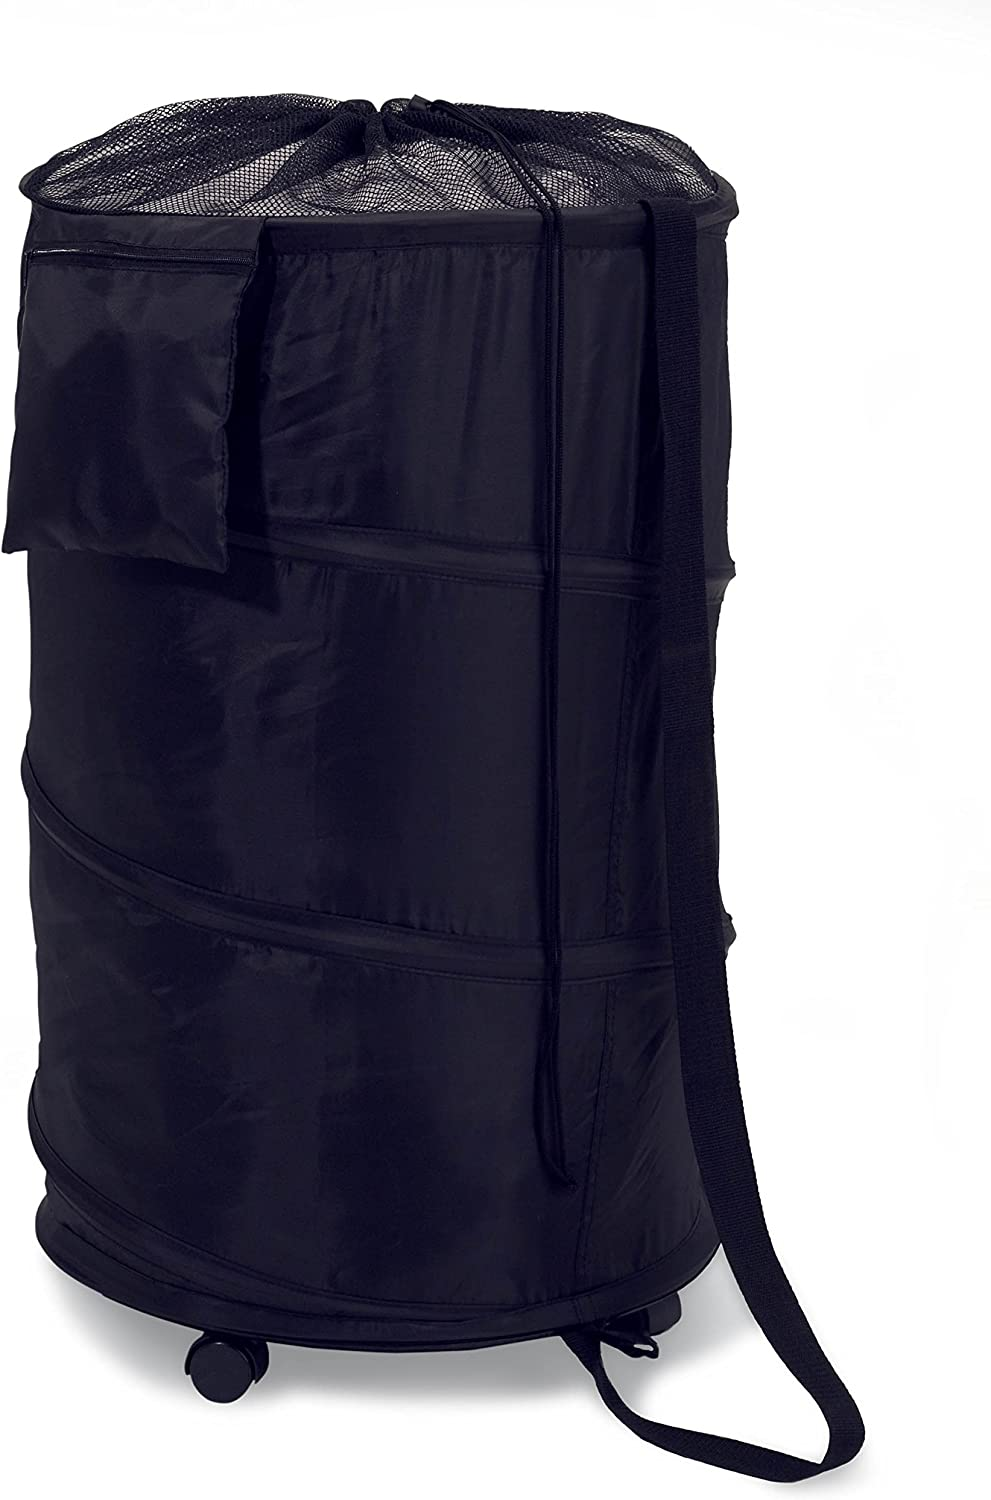 Honey-Can-Do HMP-01454 Deluxe Nylon Pop Up Clothing Hamper on Wheels Black 27 inches x 18.5 inches